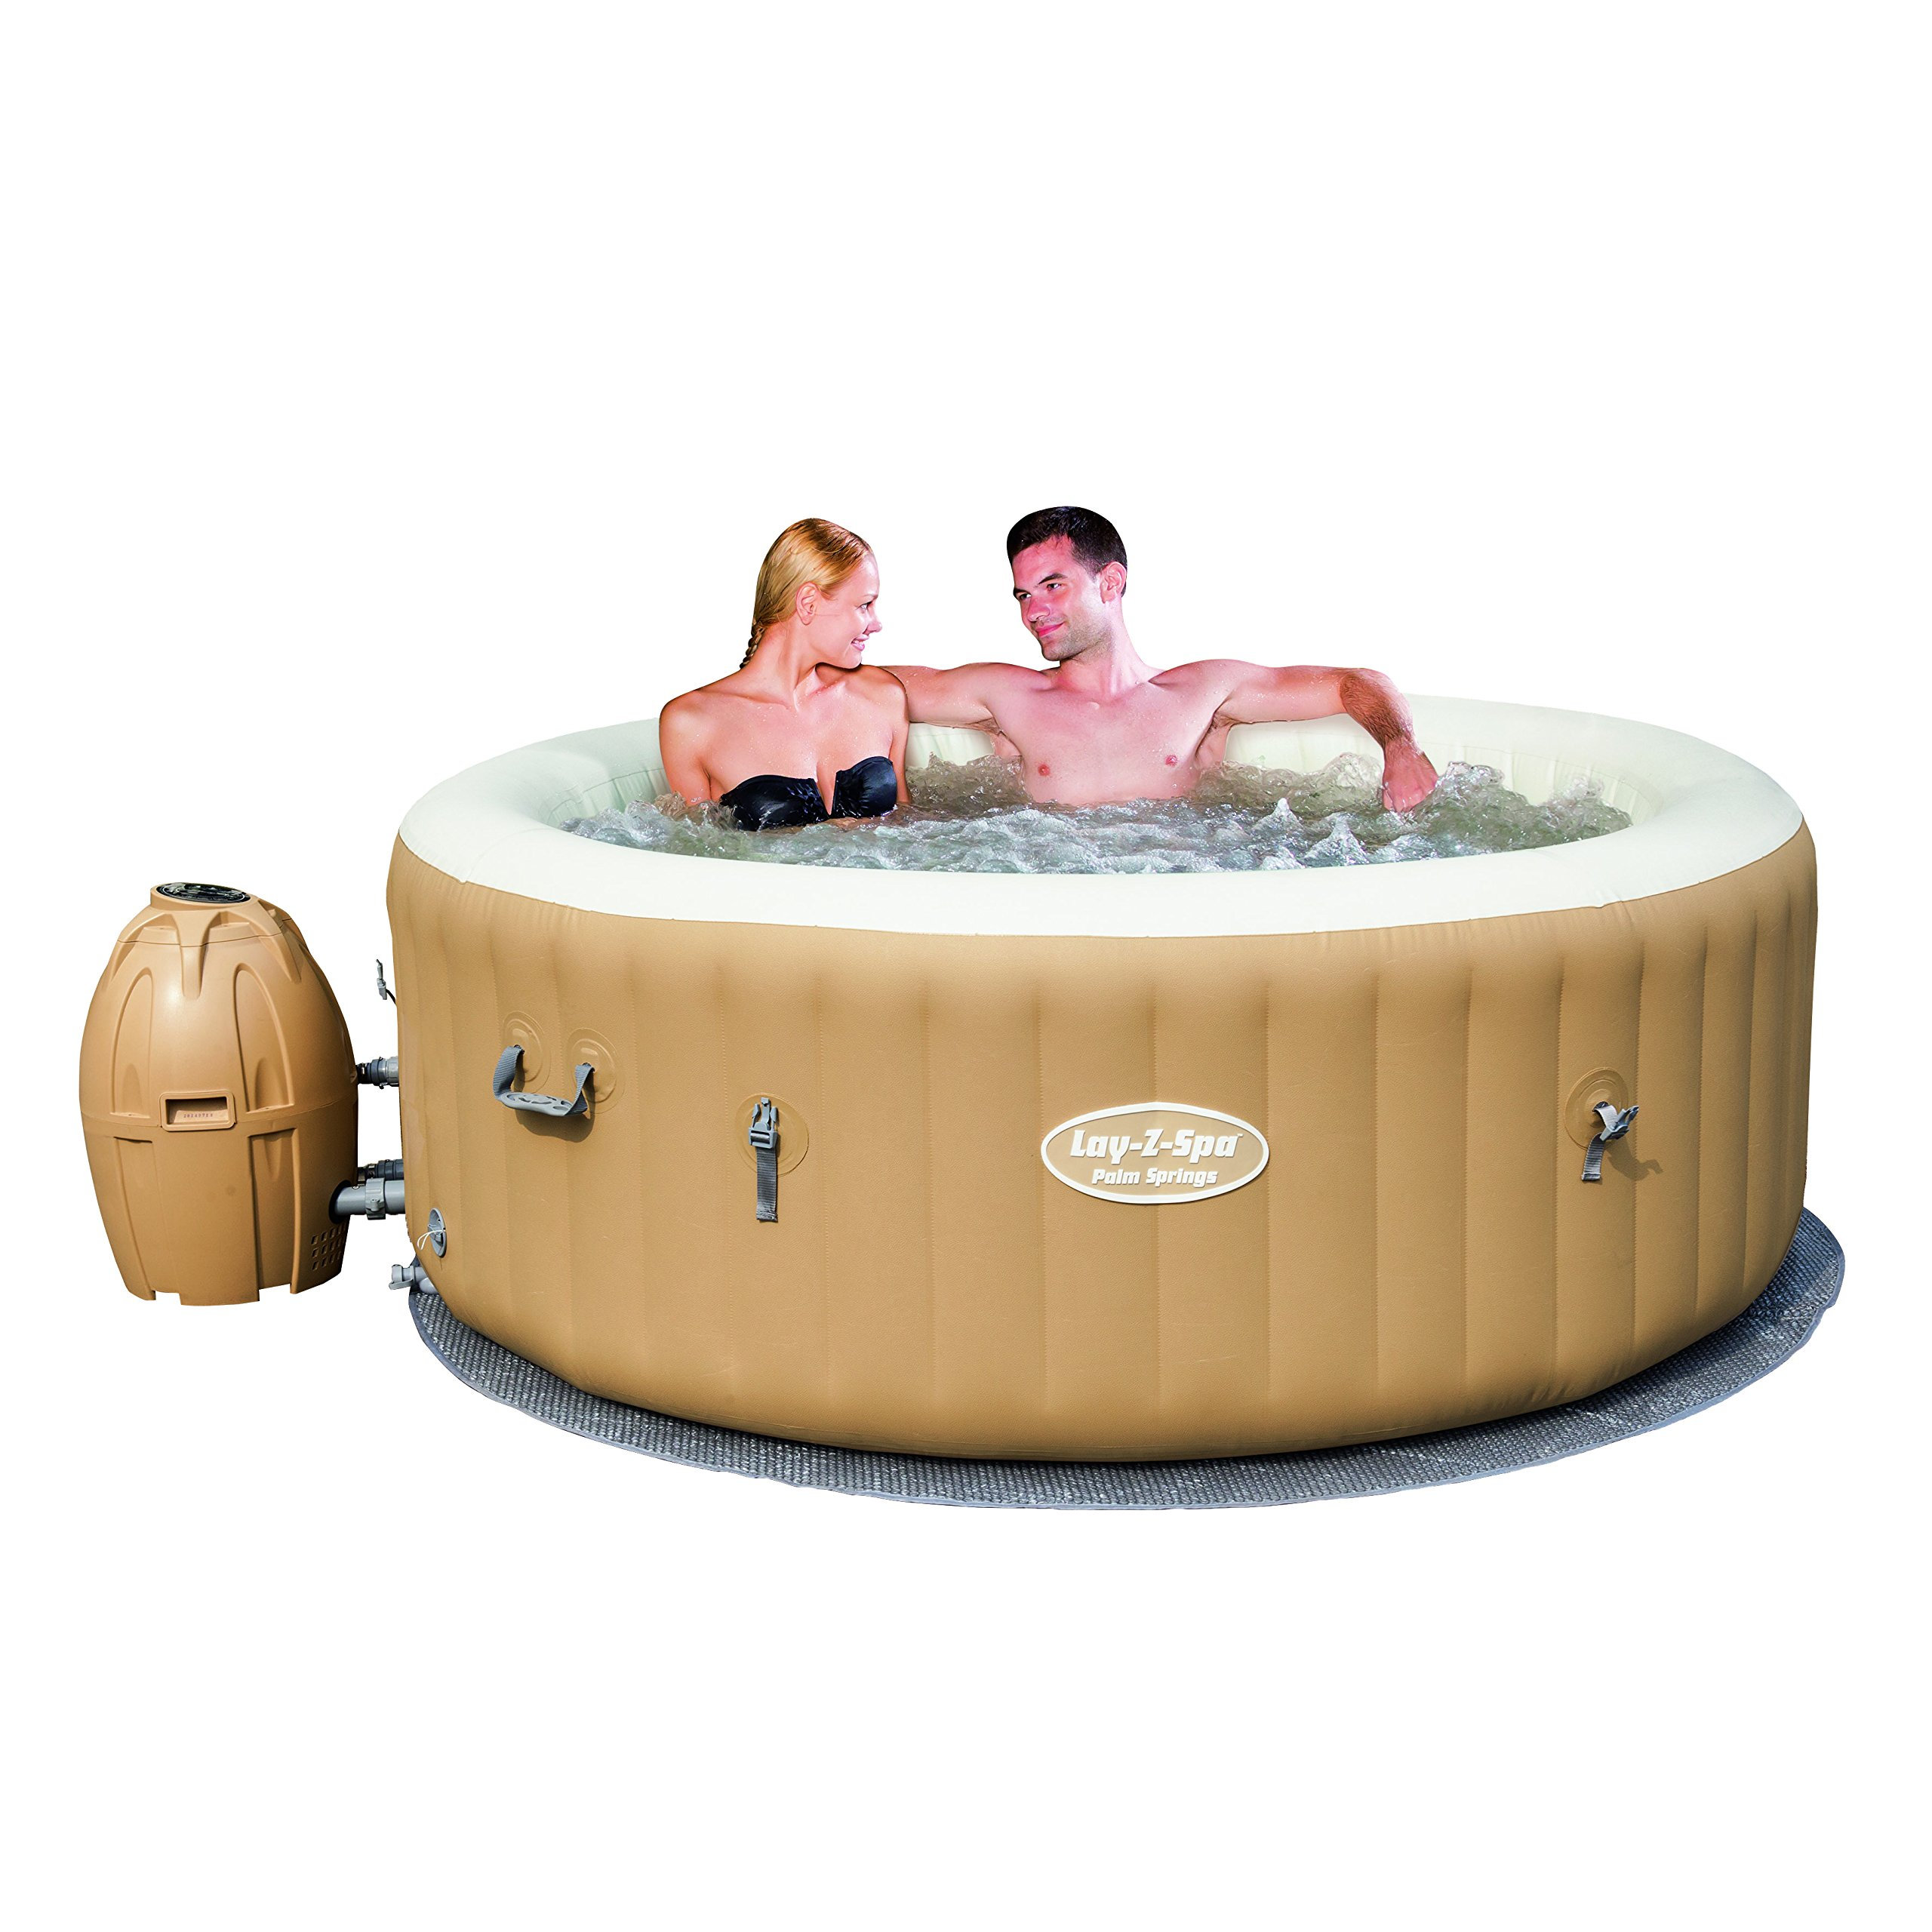 Best Rated in Outdoor Hot Tubs & Helpful Customer Reviews - Amazon.com